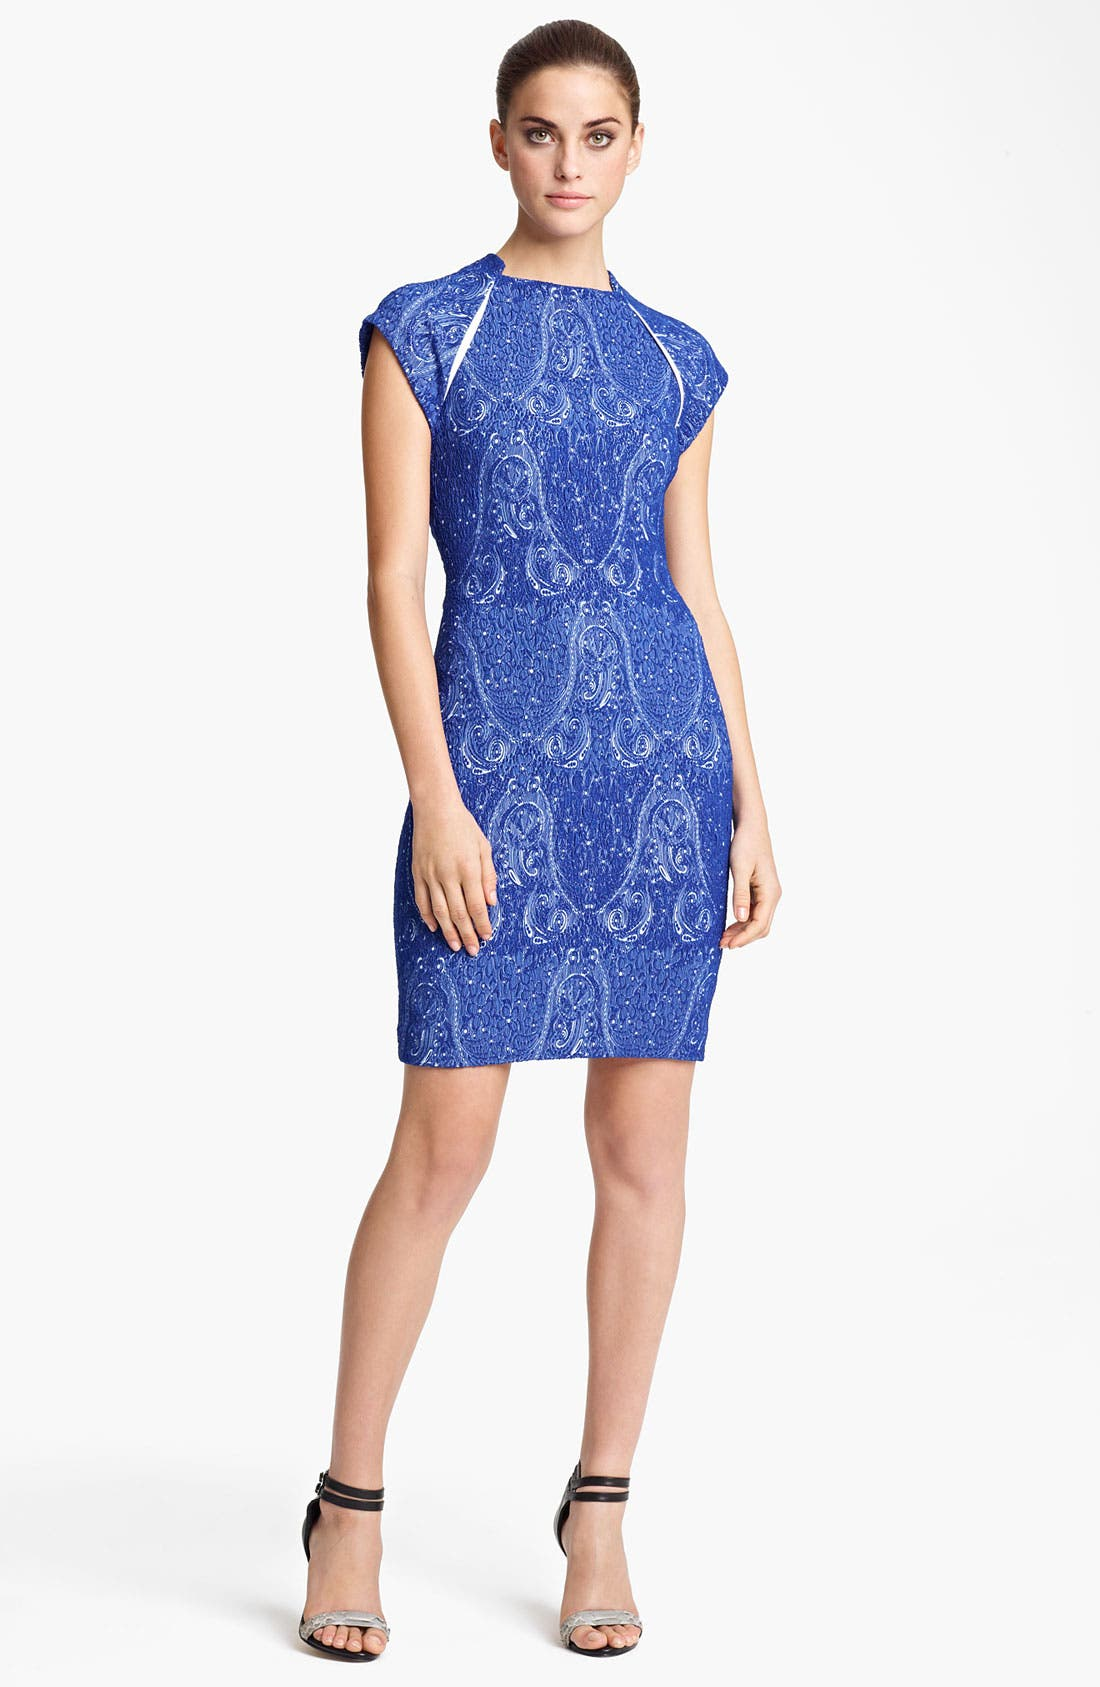 Main Image - Yigal Azrouël Stretch Jacquard Dress